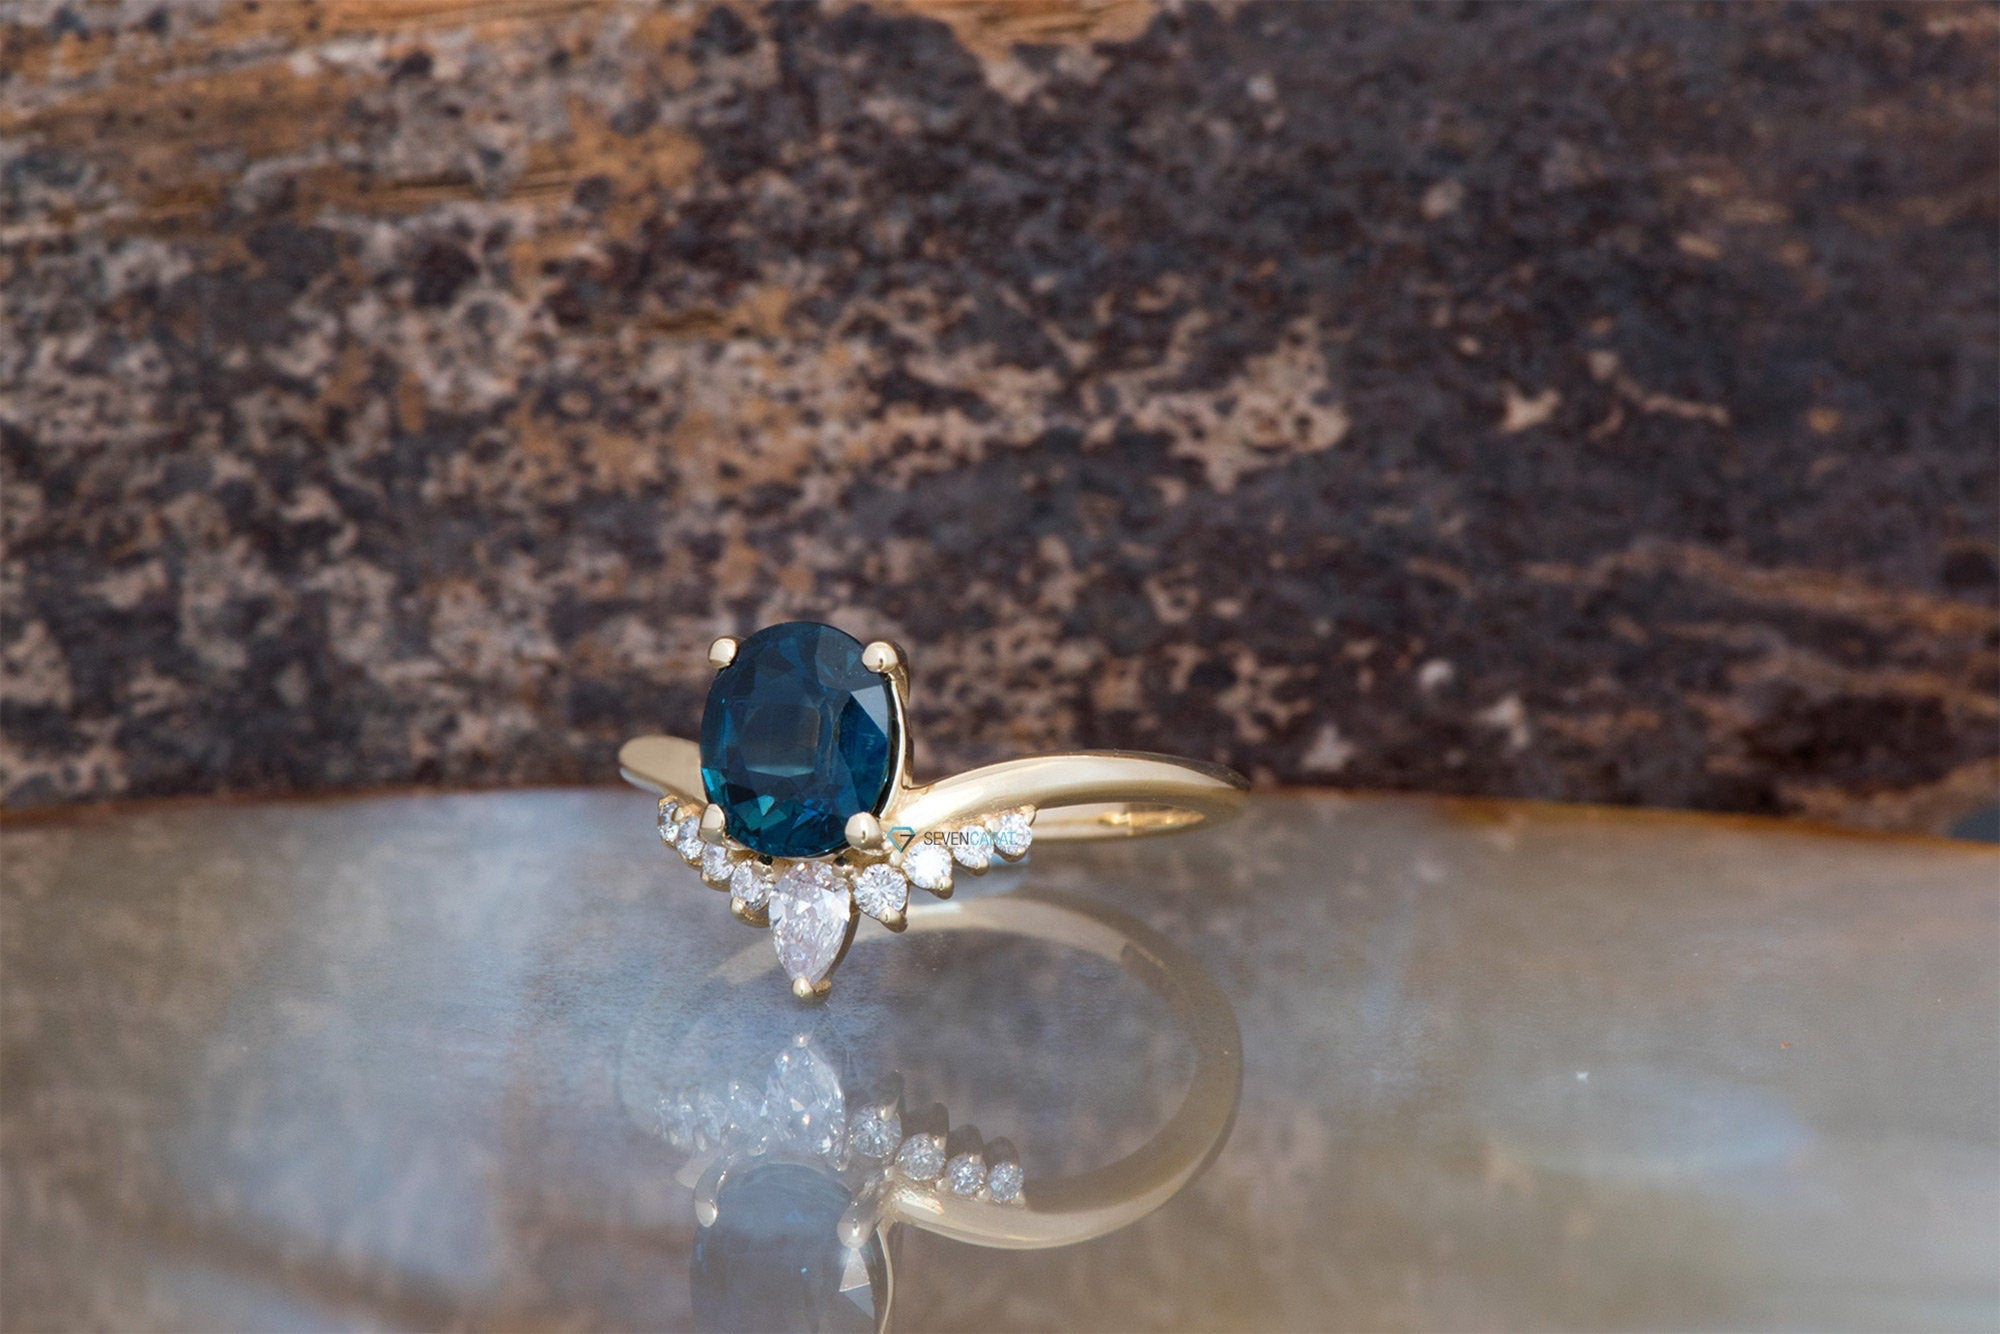 Unique sapphire engagement ring-Blue Sapphire engagement ring-1.5 ct Oval Blue Sapphire Engagement Ring-Anniversary ring-ON SALE !!! -